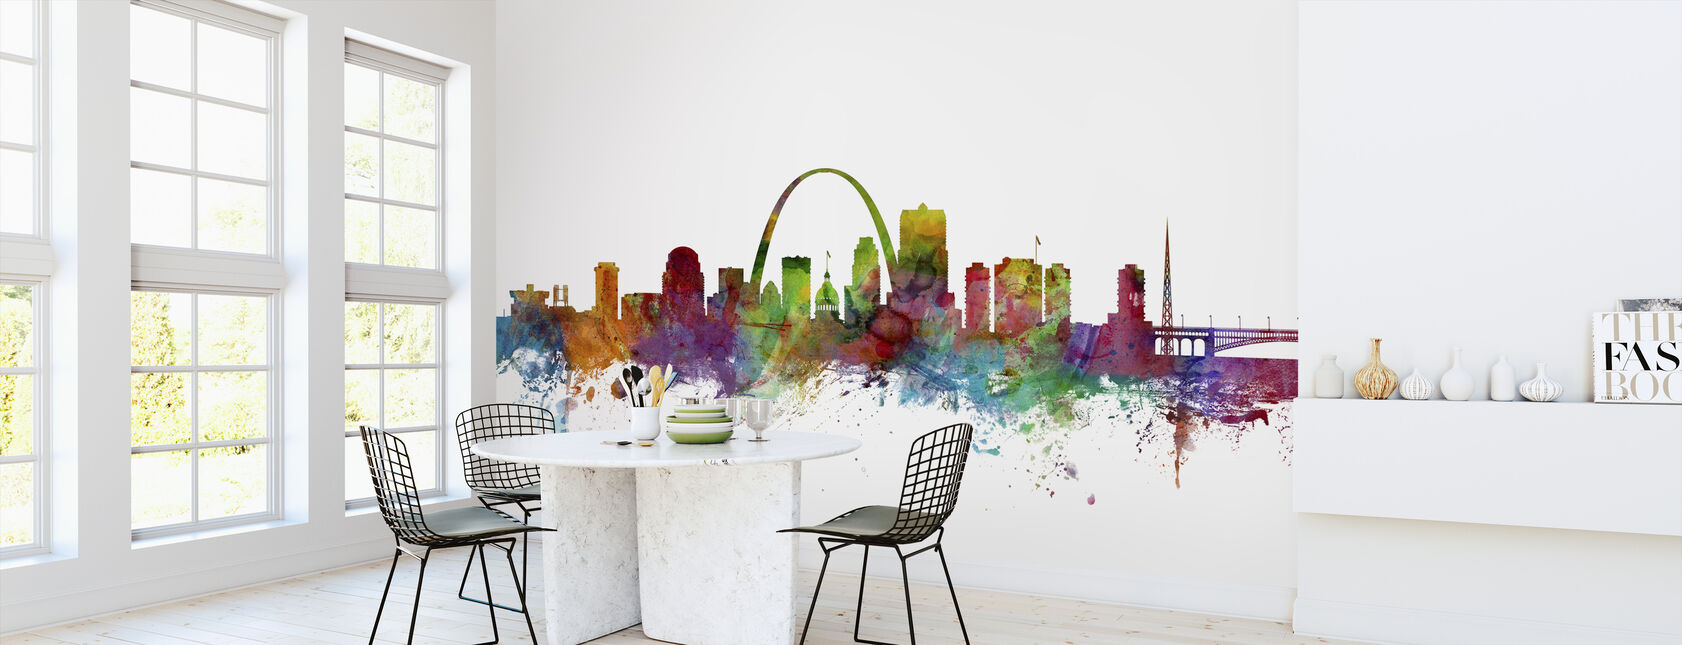 St Louis Missouri Skyline - Wallpaper - Kitchen